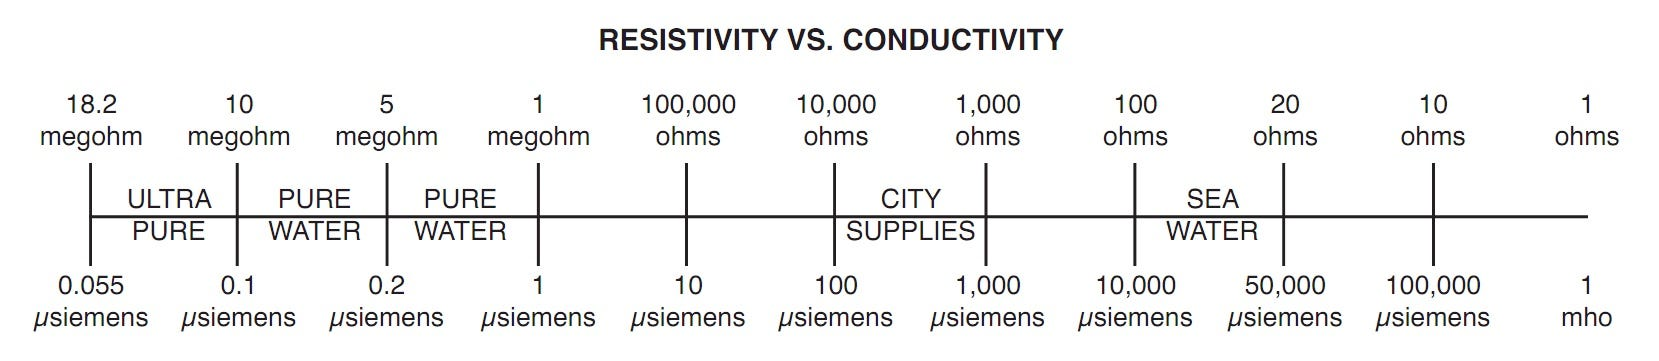 resistivity vs. conductivity